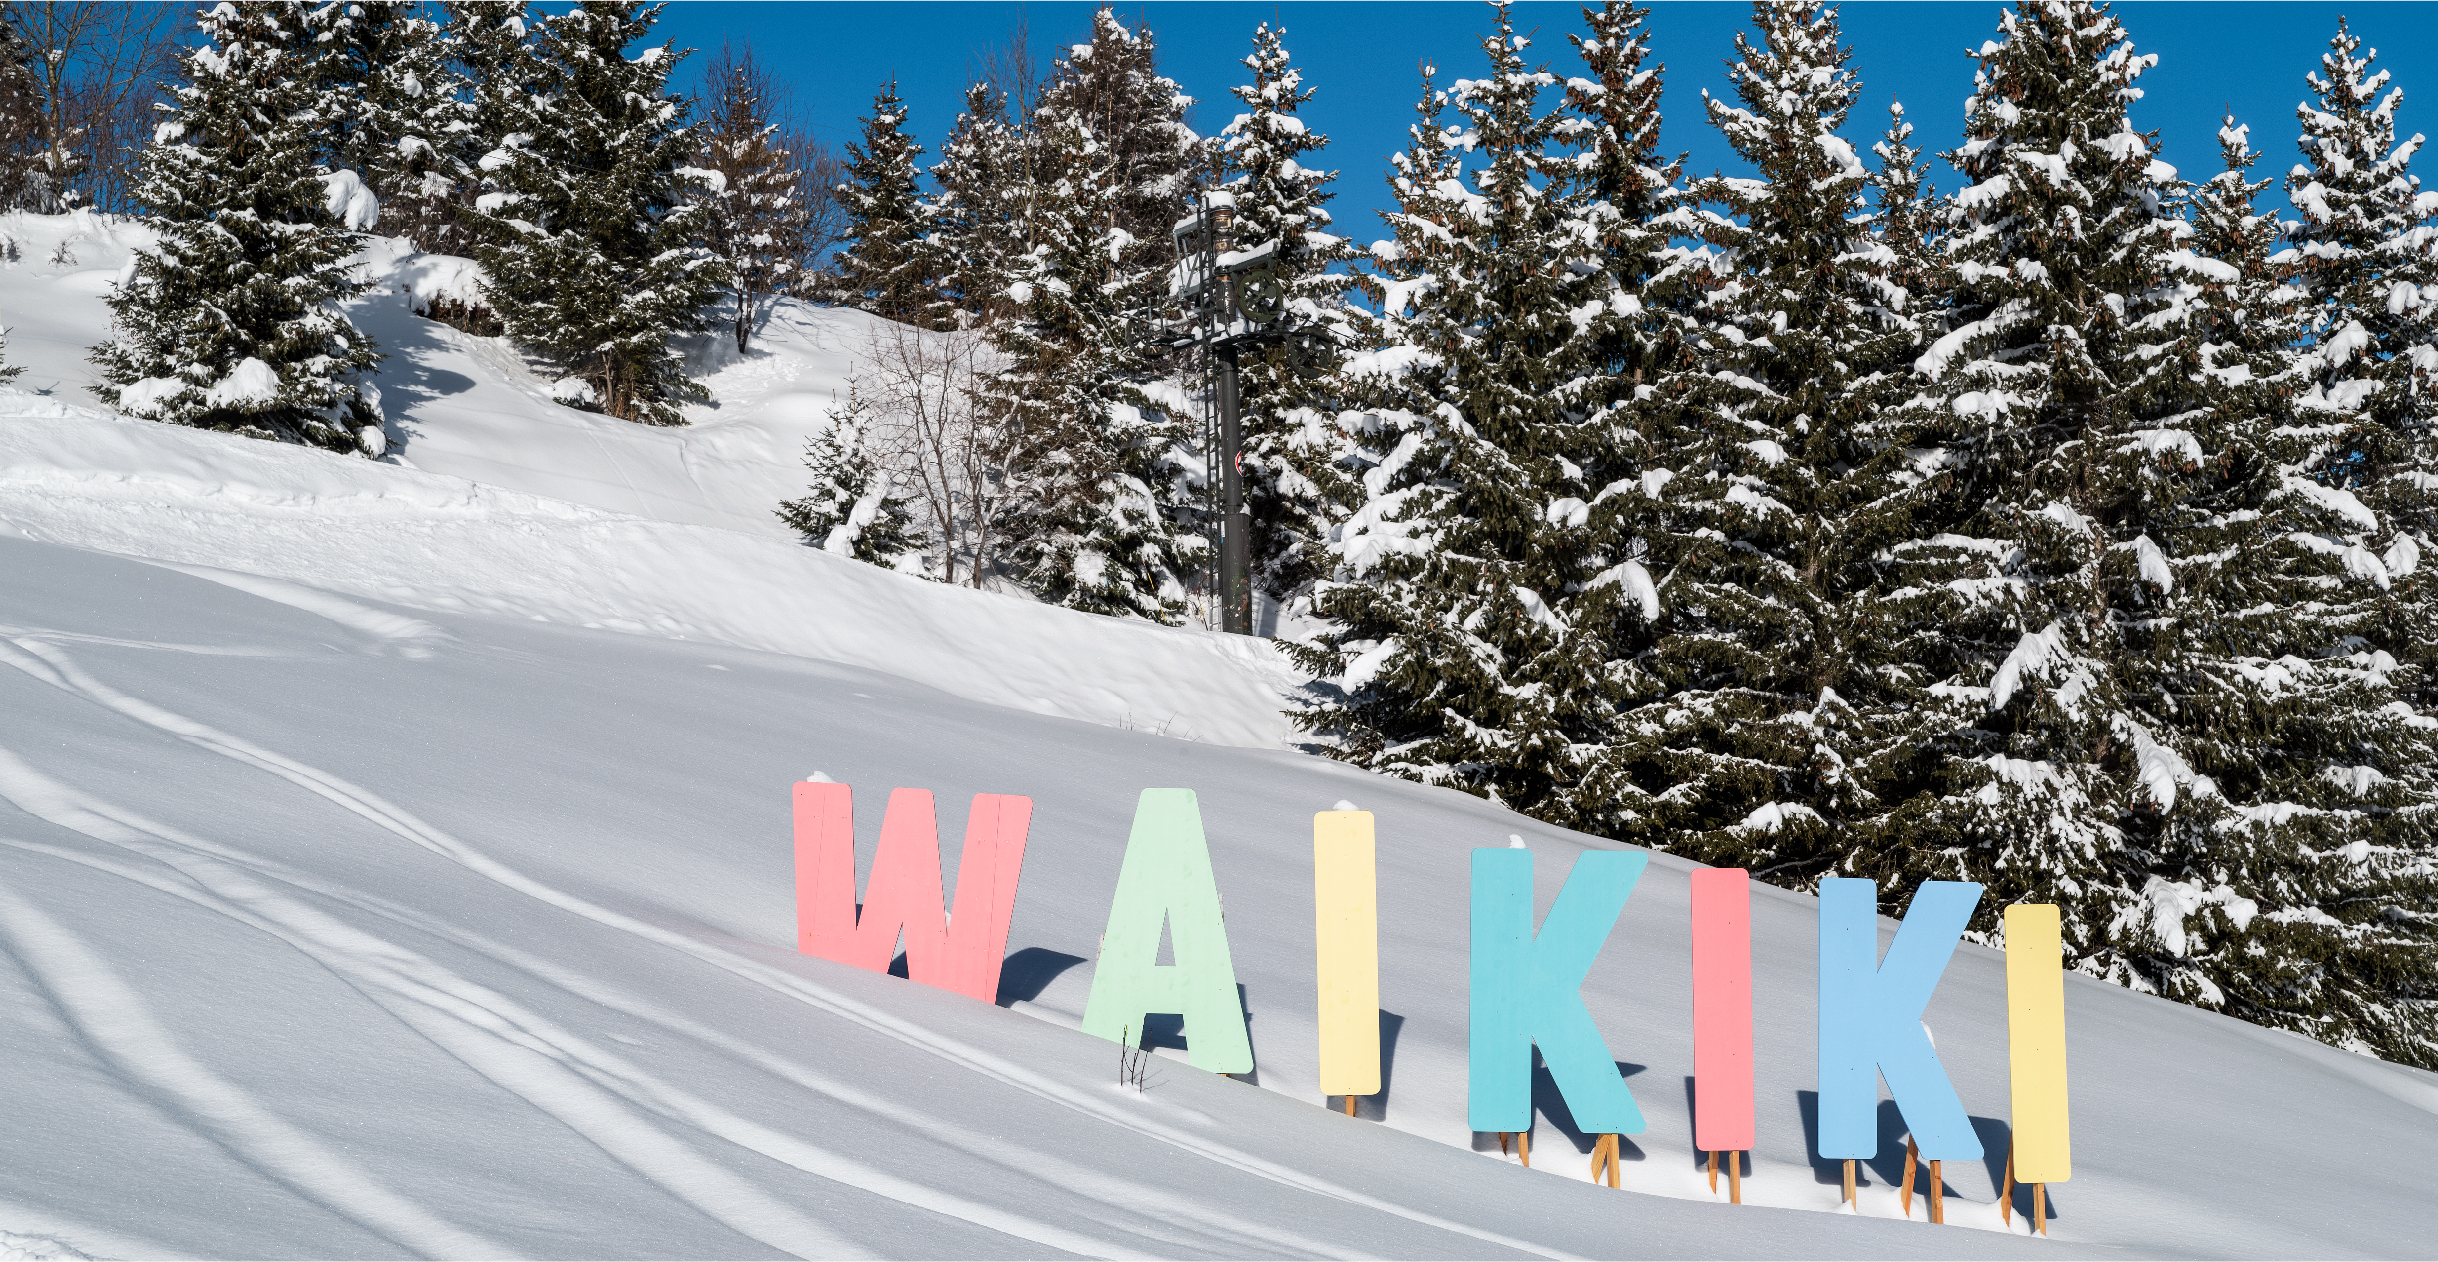 Waikiki take on Hollywood sign. Pastel plywood letters getting buried in the snow